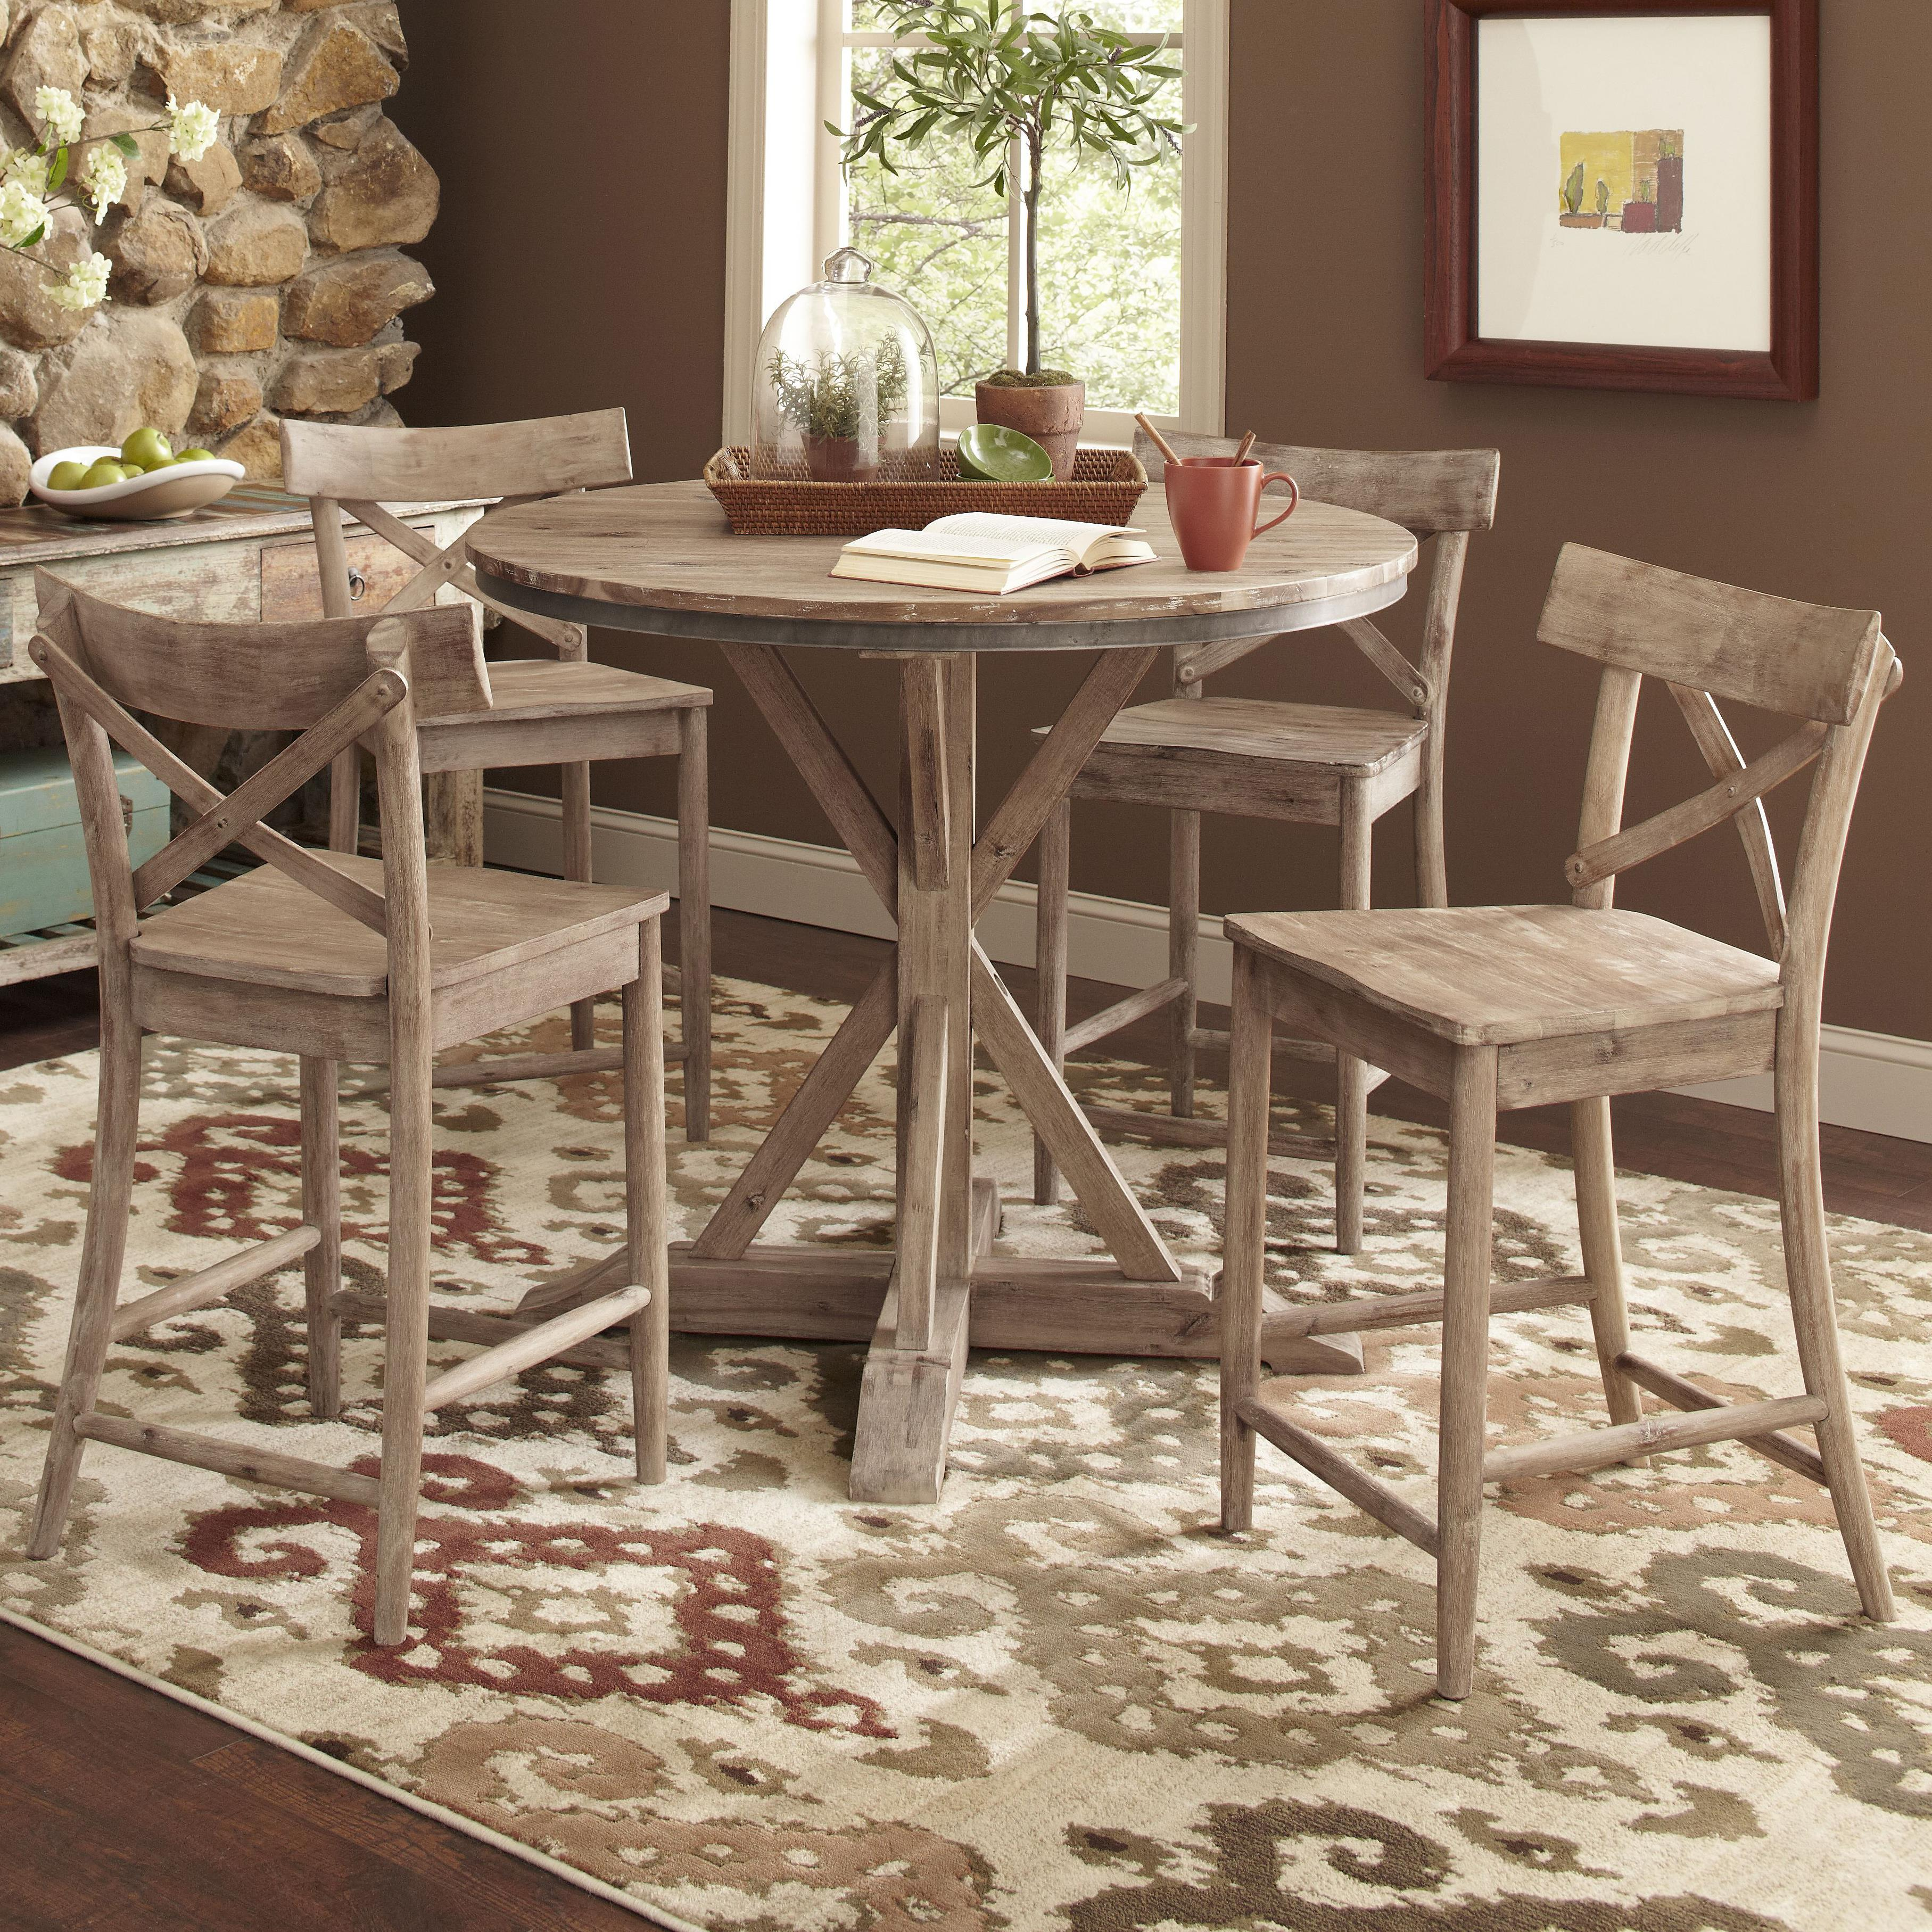 rustic round kitchen table Rustic Casual Counter Height Dining Table Set